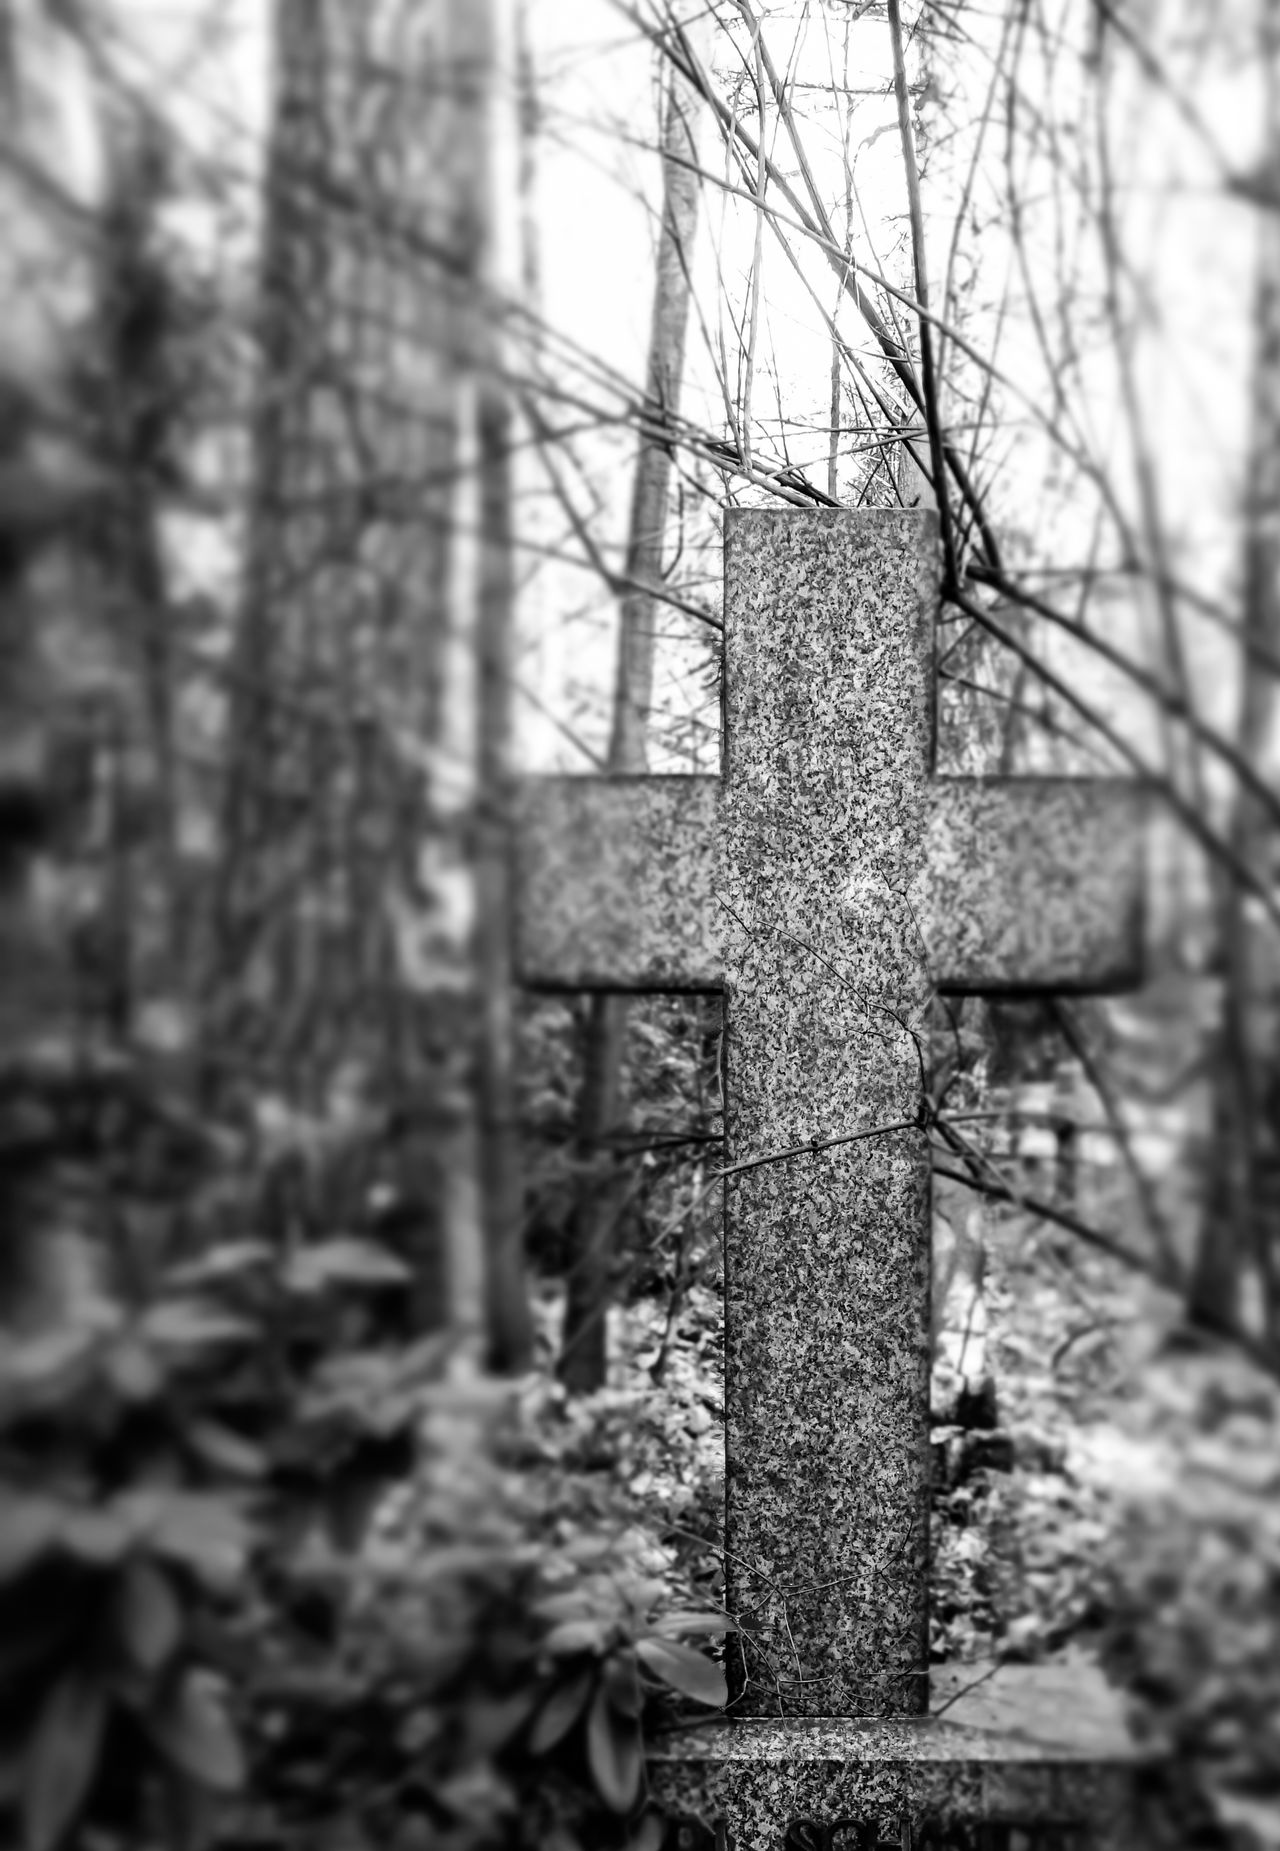 Black & White Black And White Cemetery Cemetery Photography Christ Close-up Cross Day EyeEm Best Edits EyeEmBestPics Friedhof Nature No People Outdoors Relegion Sky Tilt-shift Tombstone Tranquility Tree Tree Trunk Long Goodbye